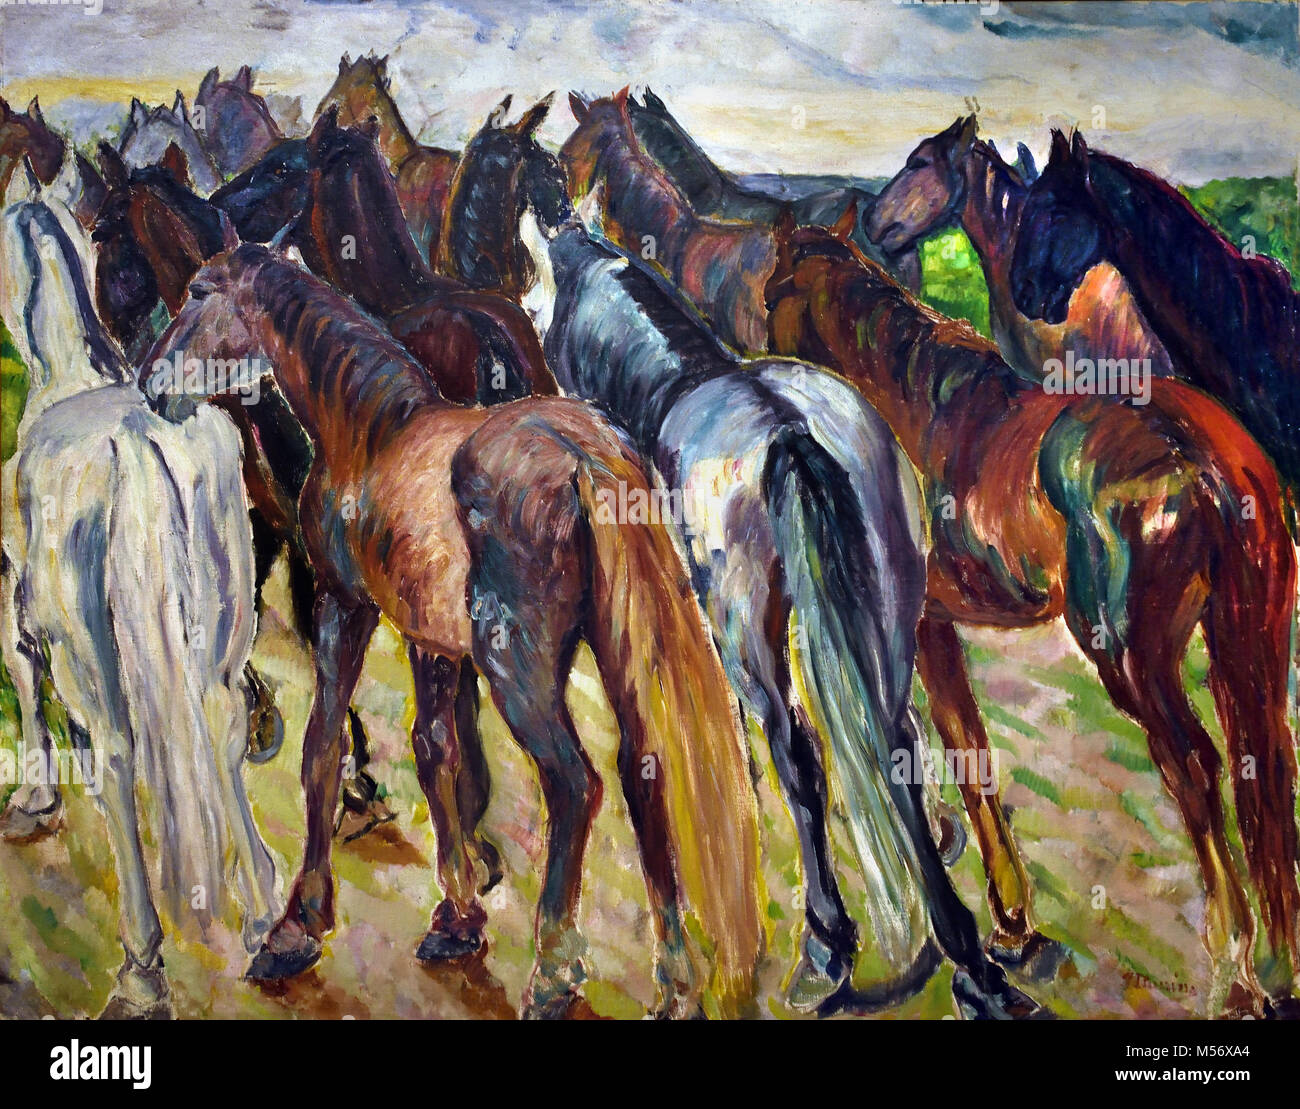 Colts in the Country 1912 Iturrino González, Francisco (Santander, Cantabria, 1864 -  Cagnes-sur-Mer, Francia, - Stock Image